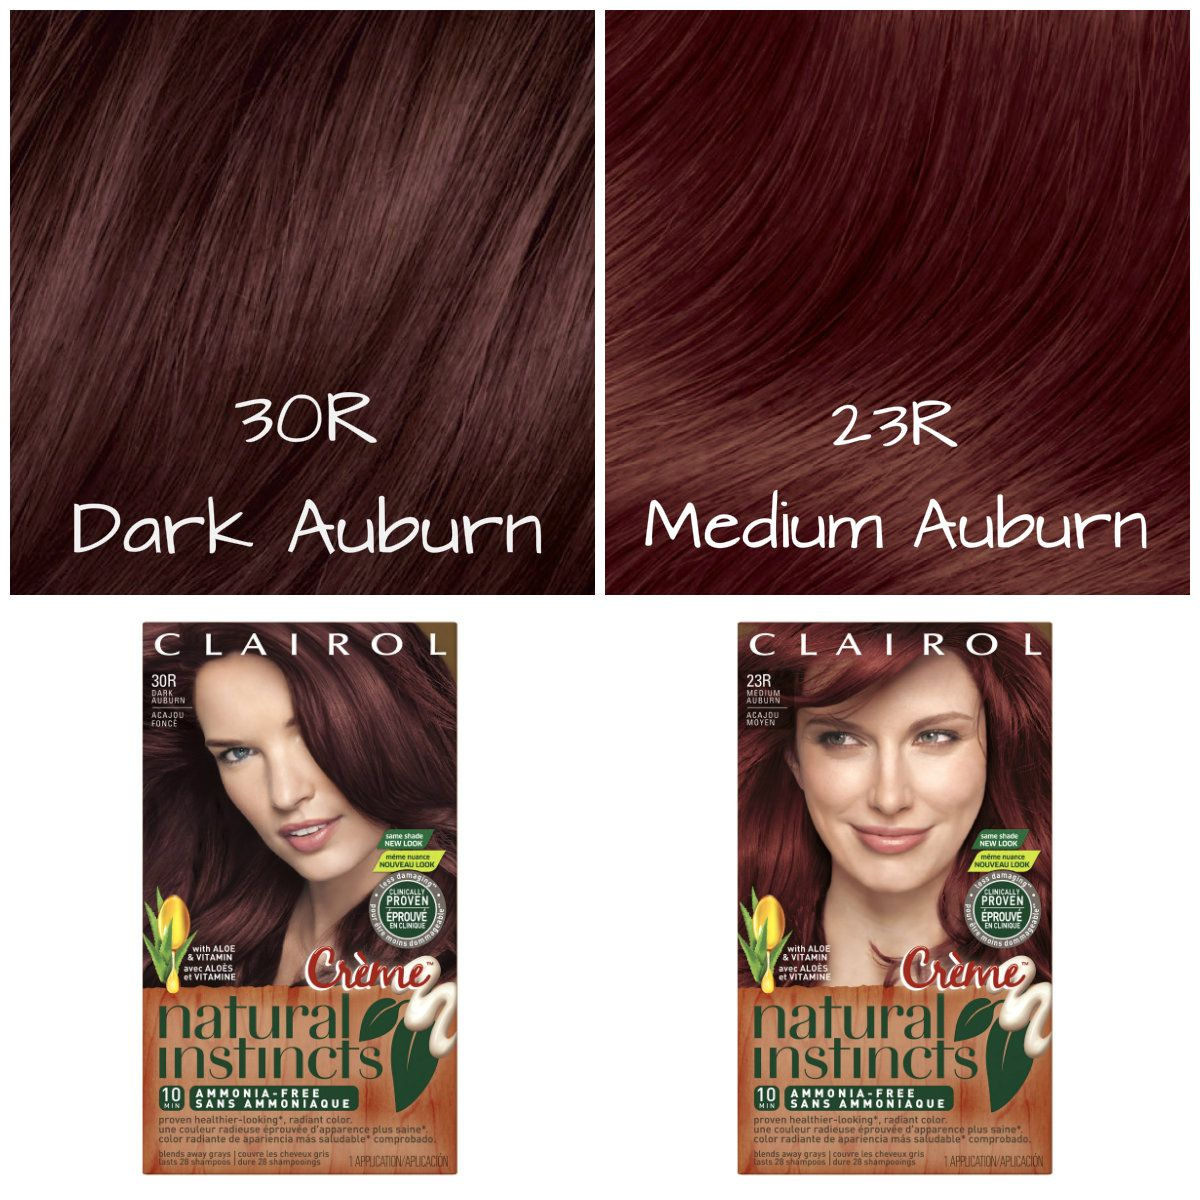 Pin By Annora On Hair Color Inspiration Pinterest Dark Auburn